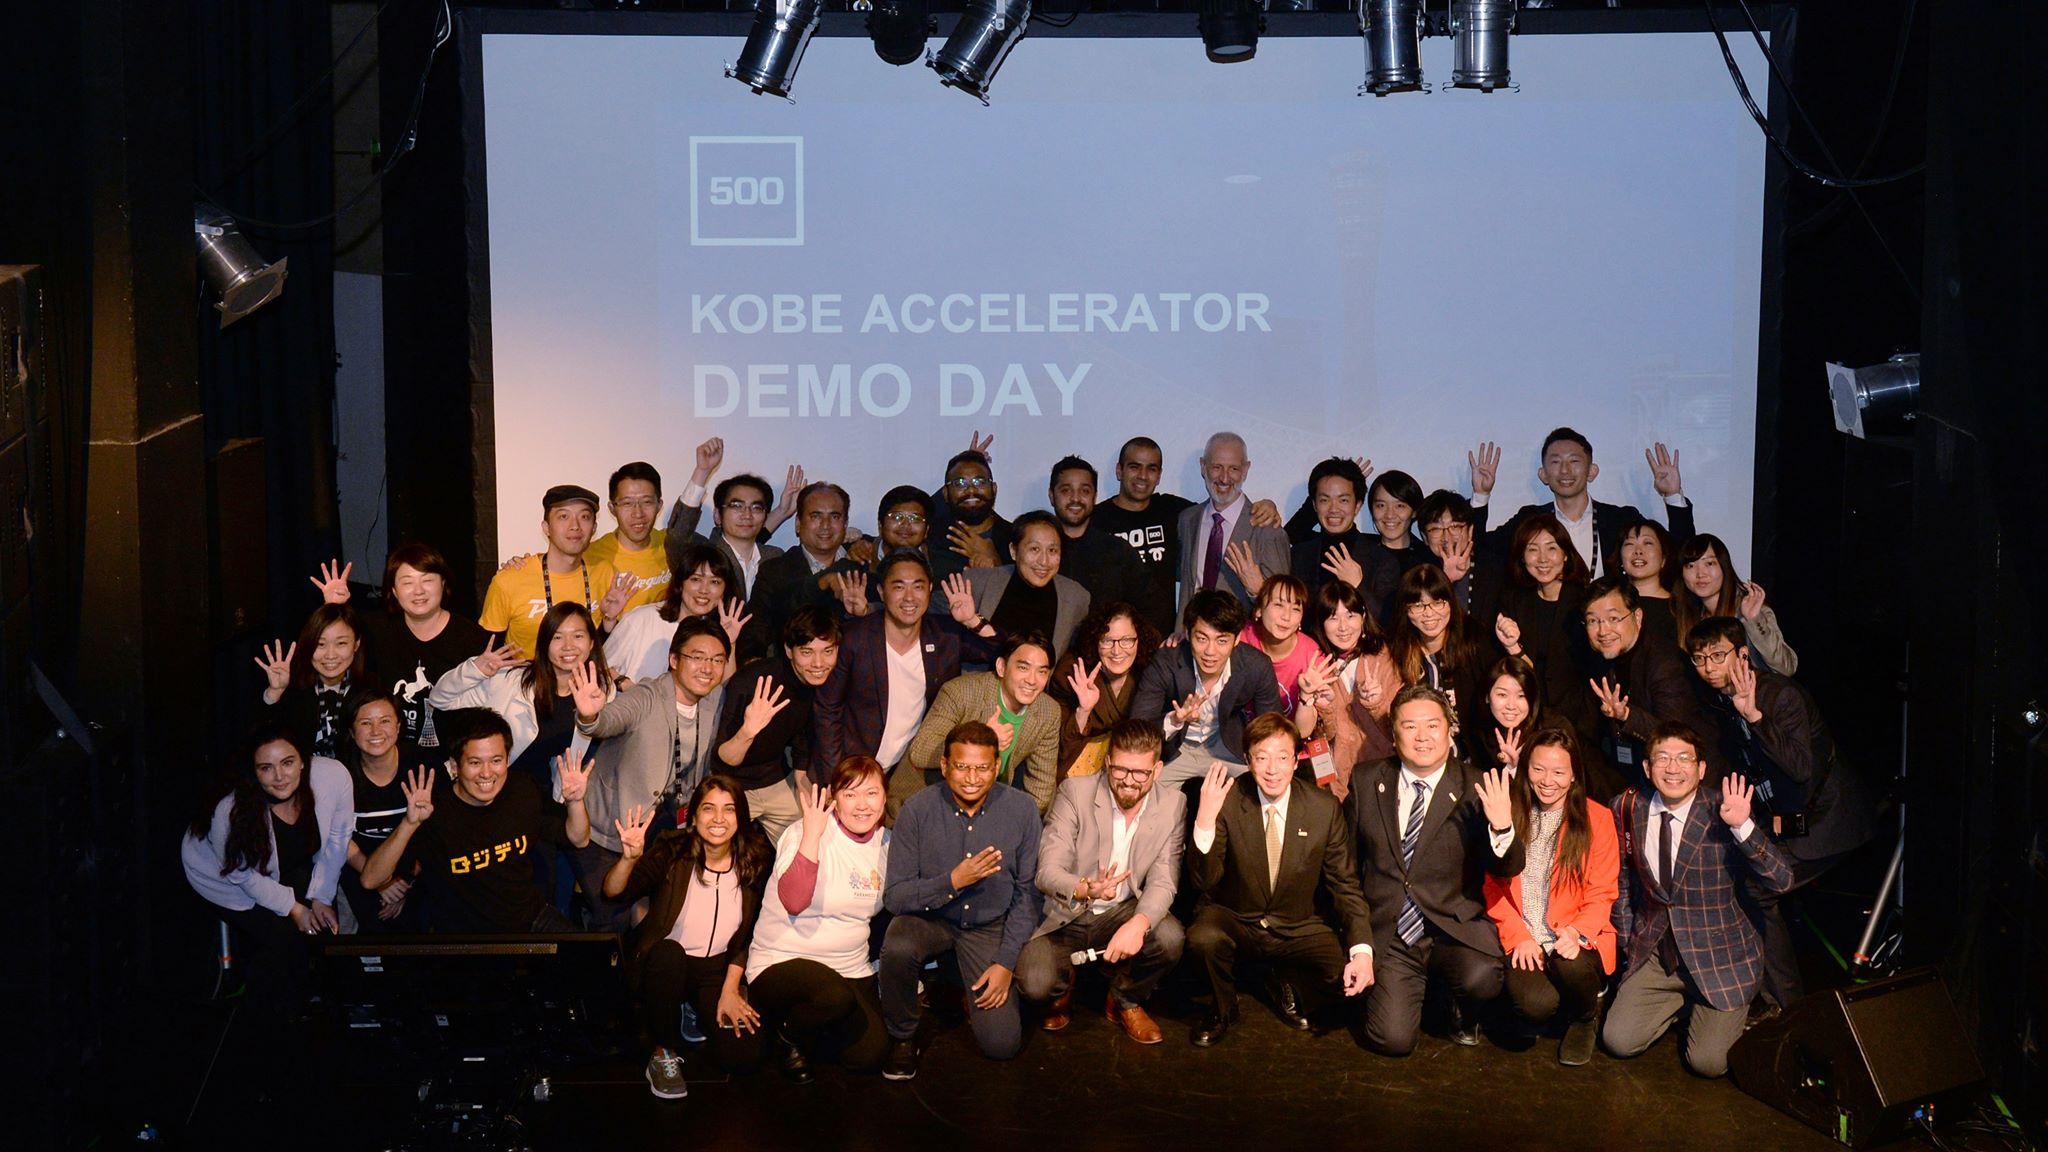 demoday group photo